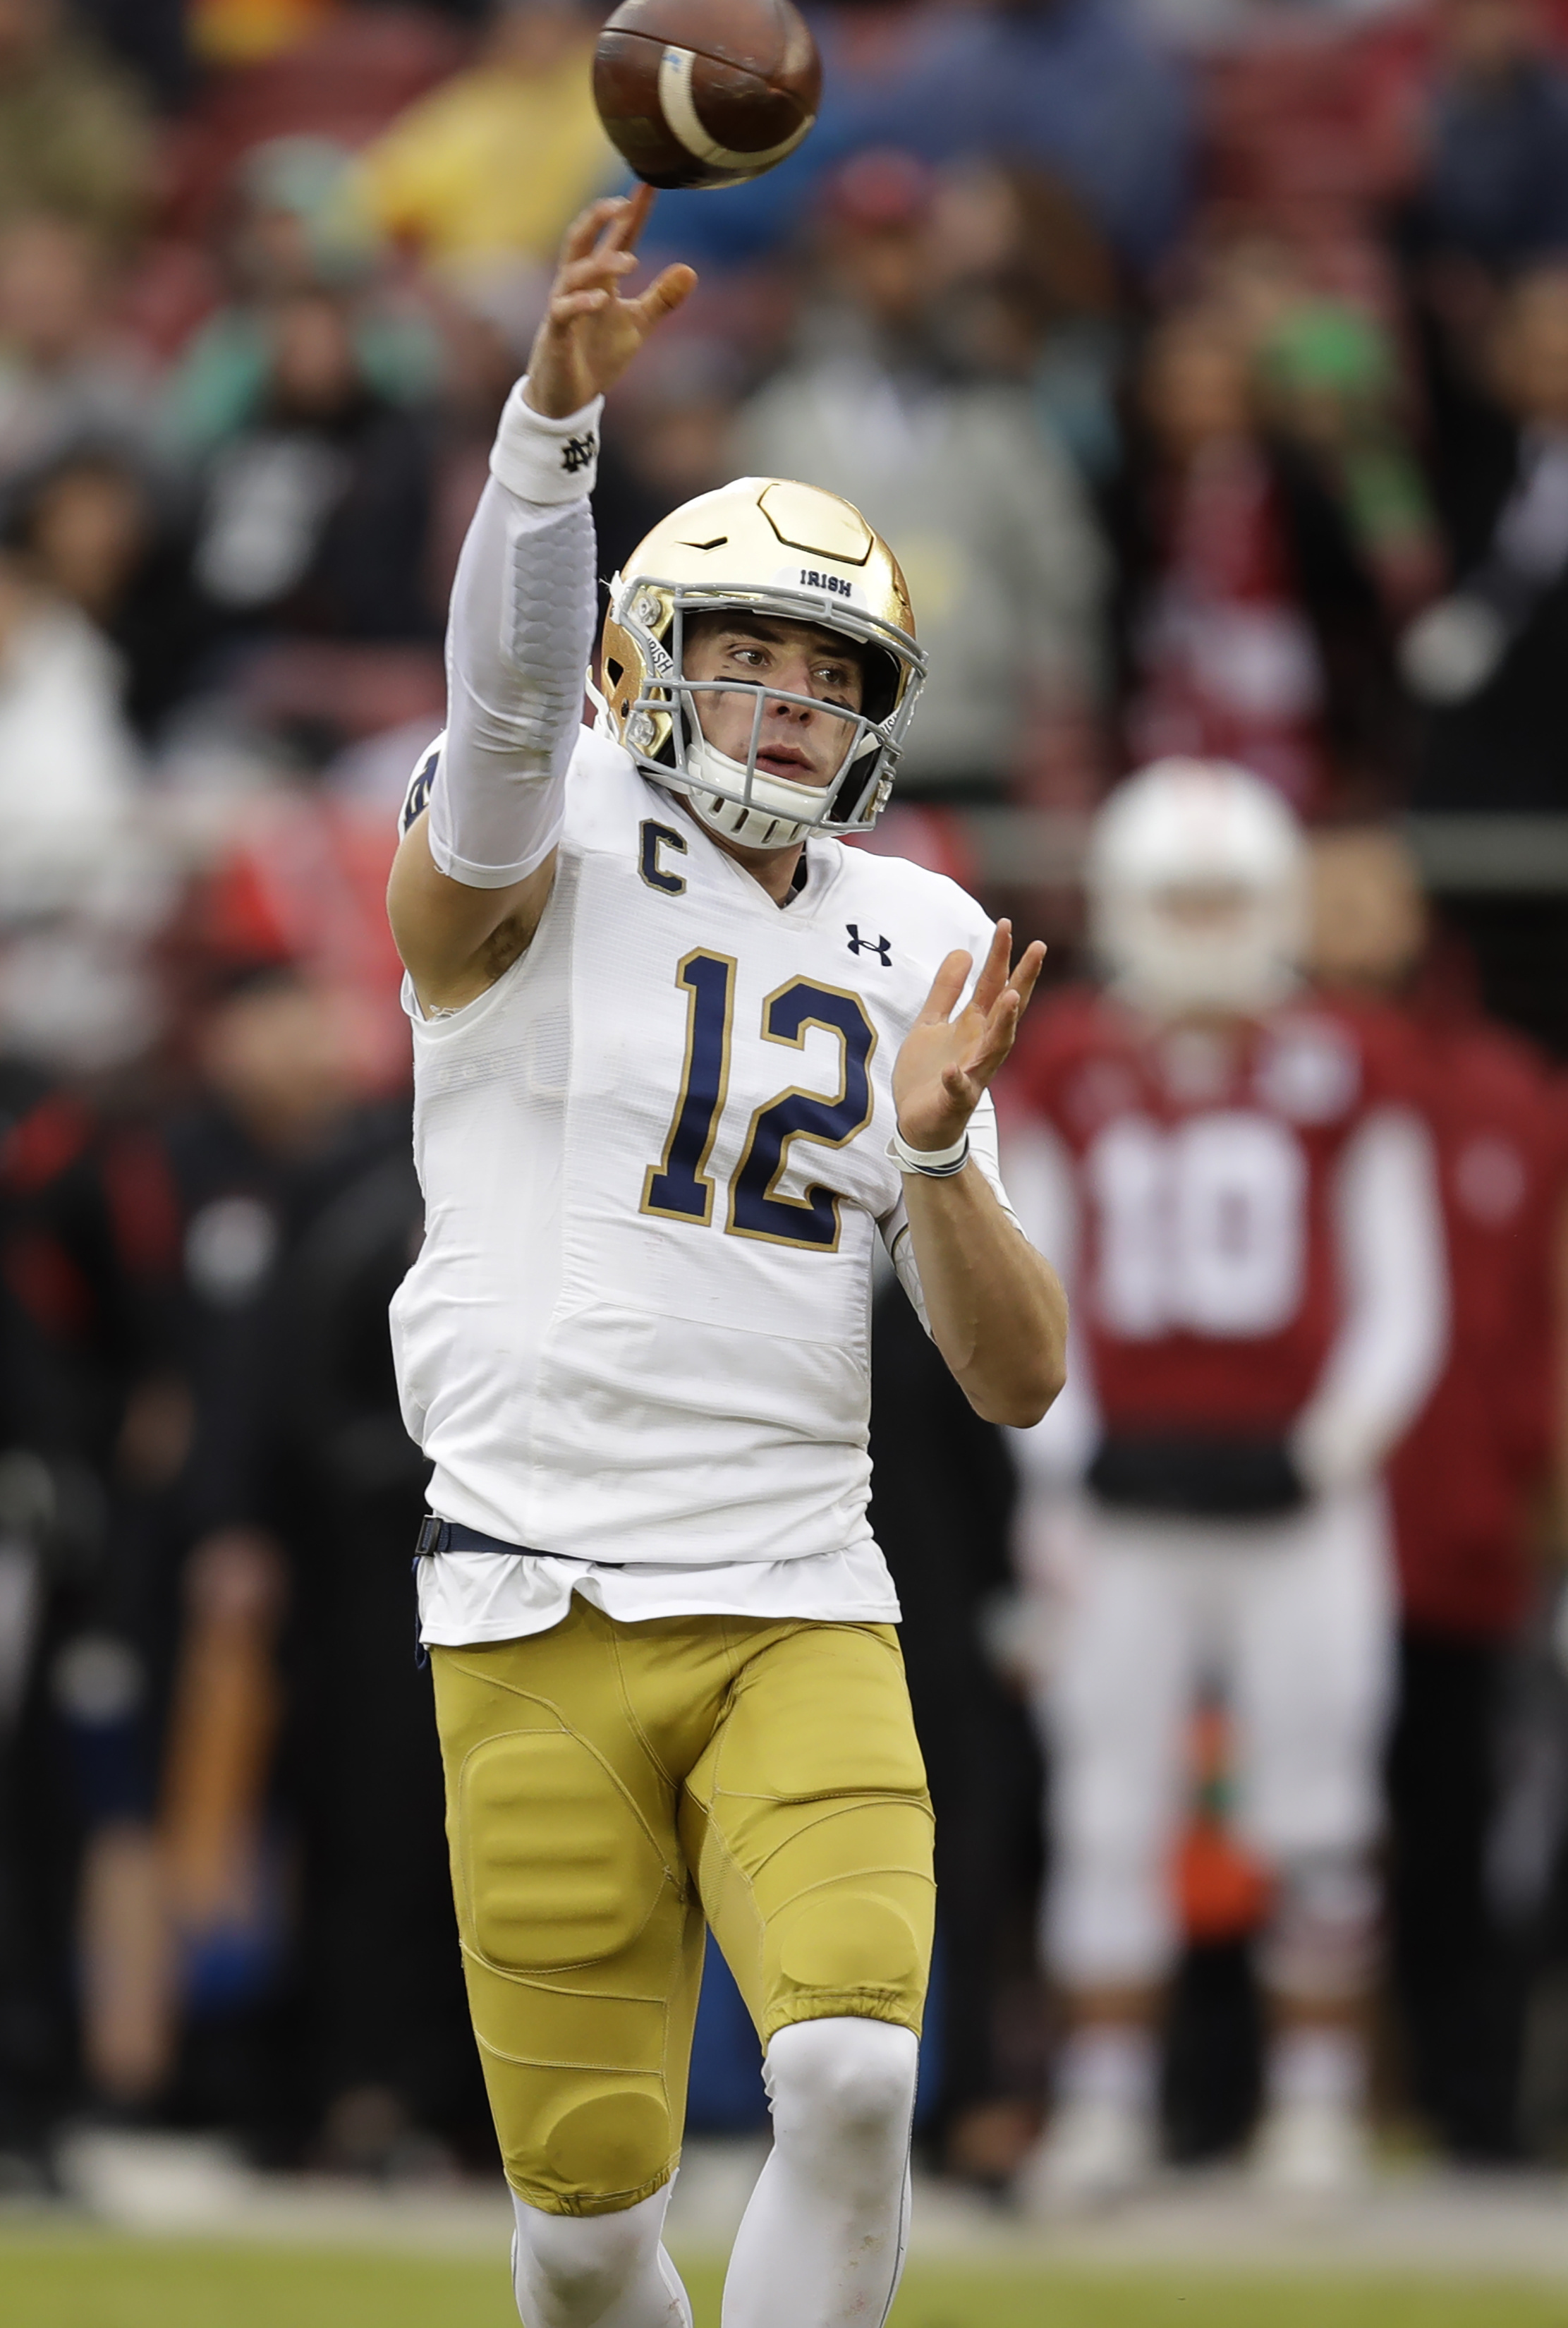 Notre Dame eyes strong finish vs Iowa State in bowl matchup